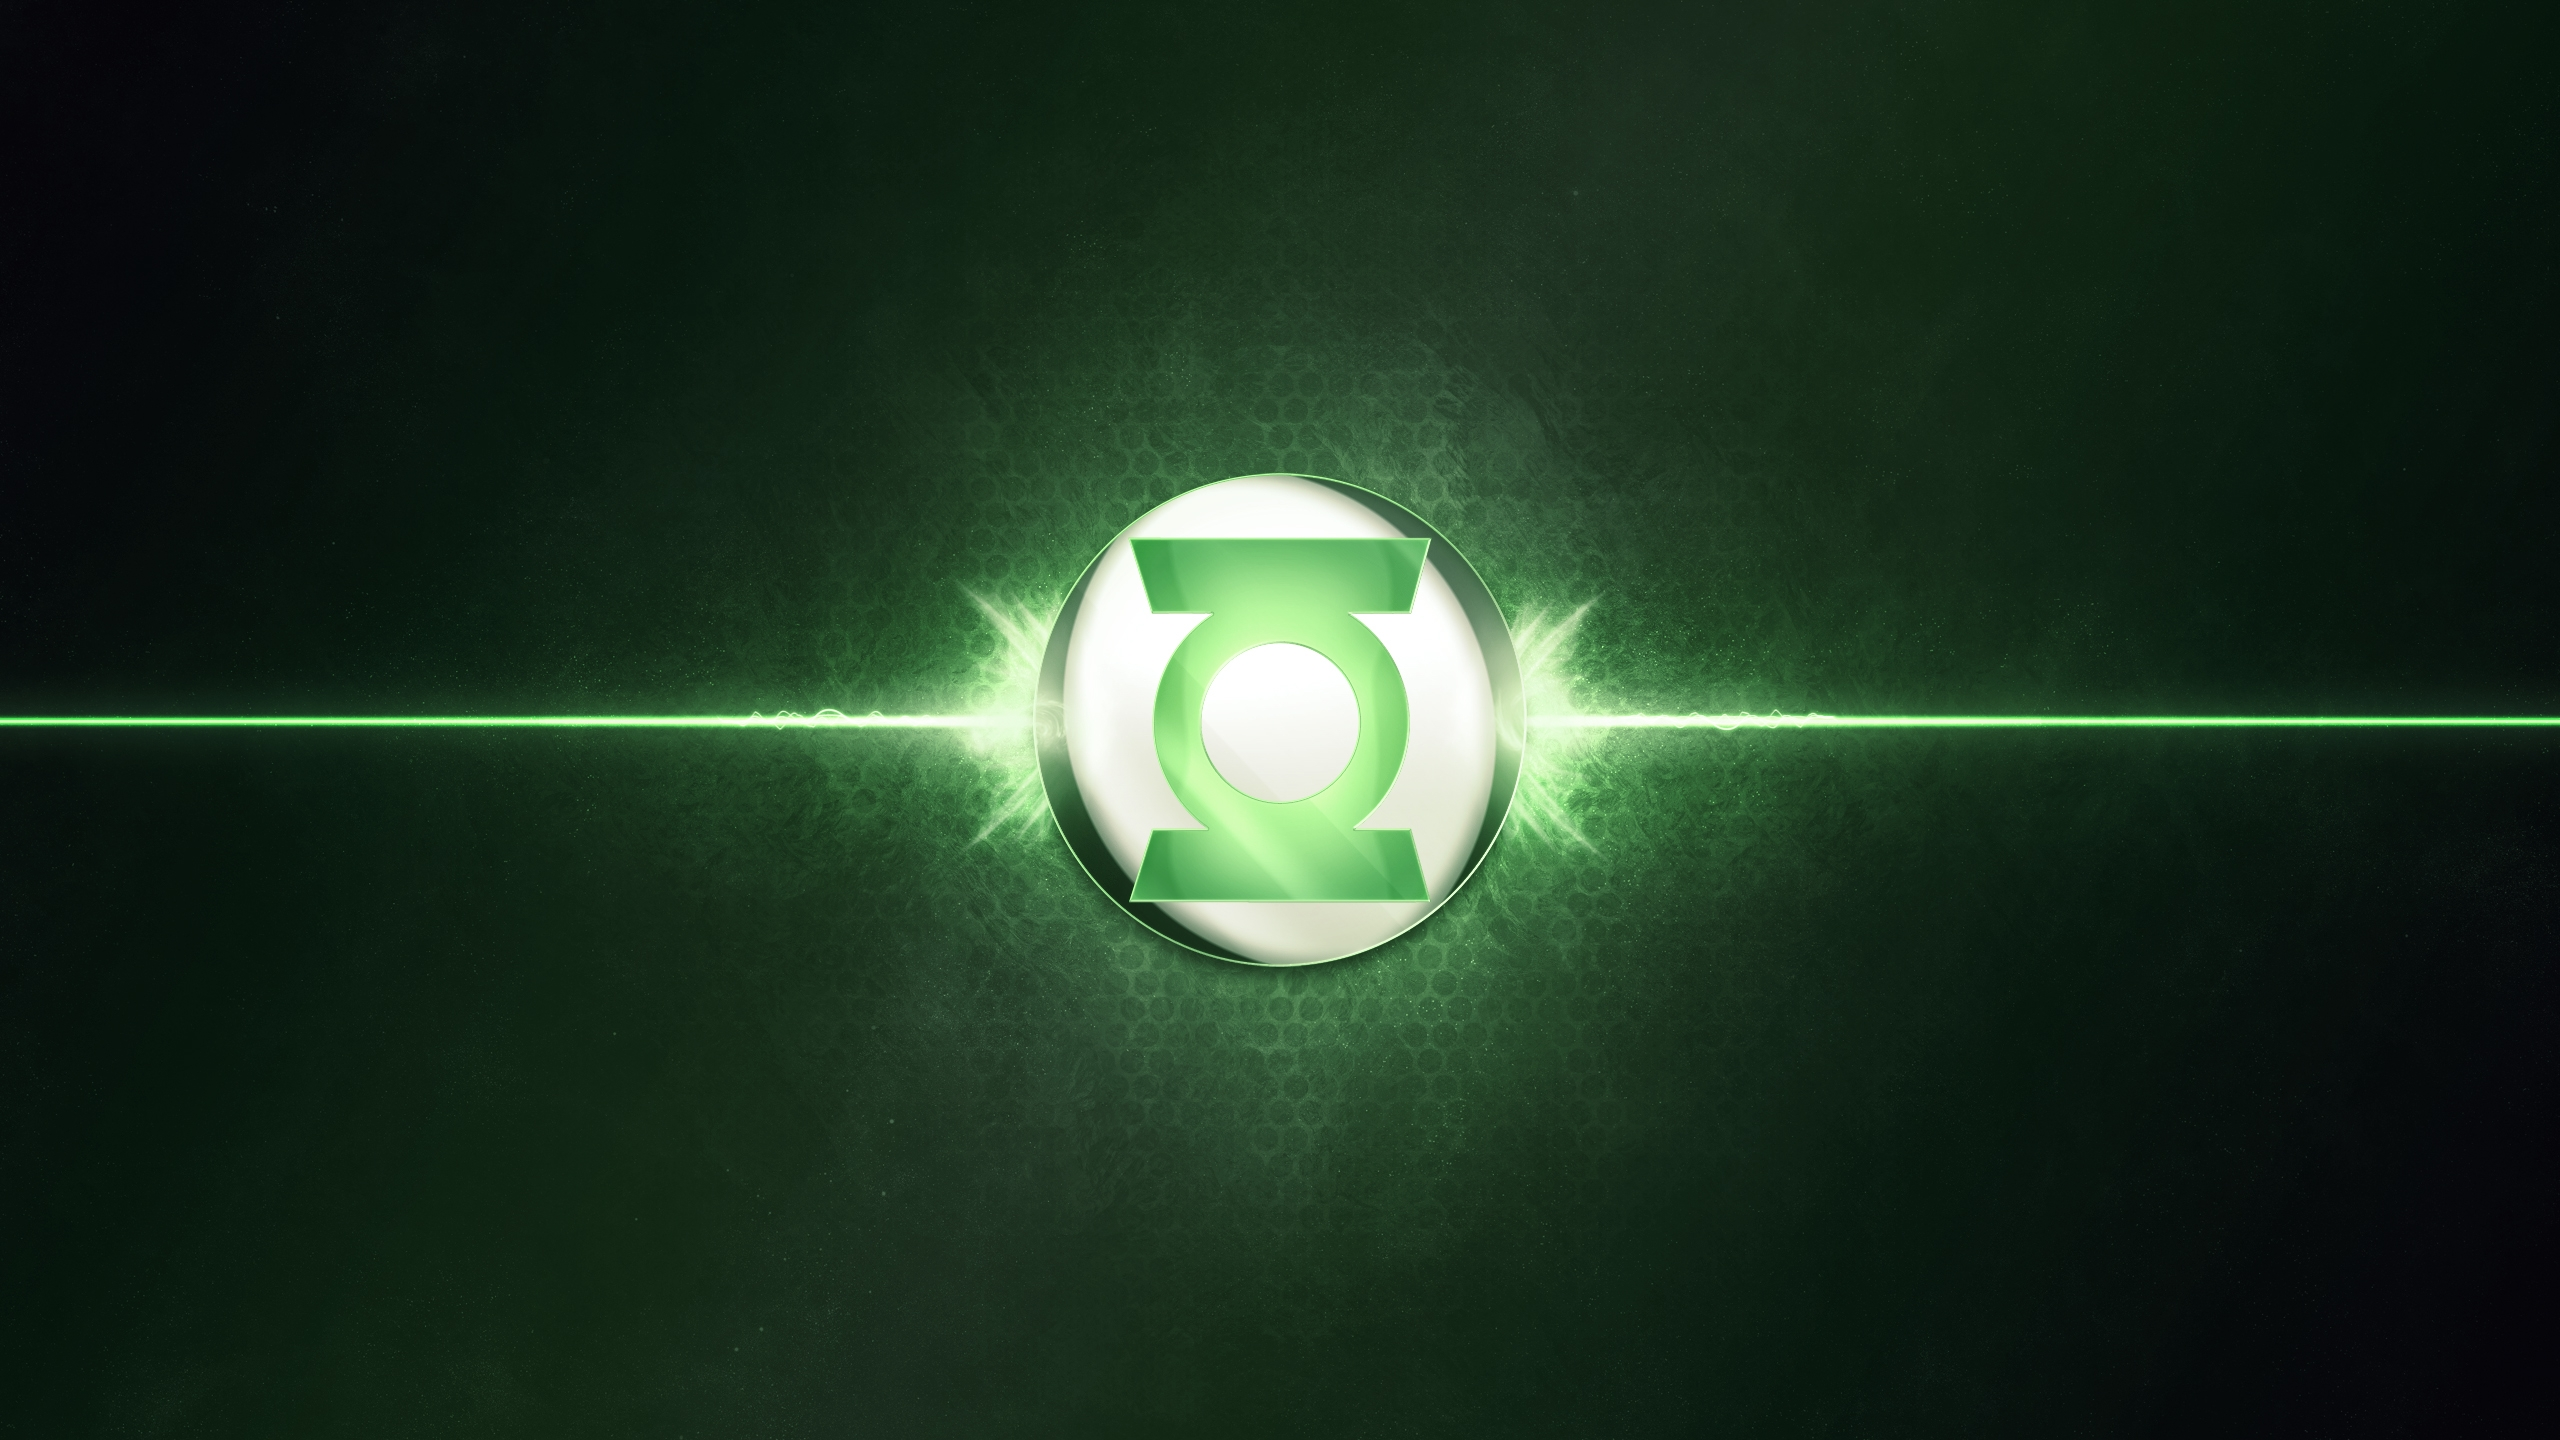 Green Lantern Computer Wallpapers Desktop Backgrounds 2560x1440 2560x1440